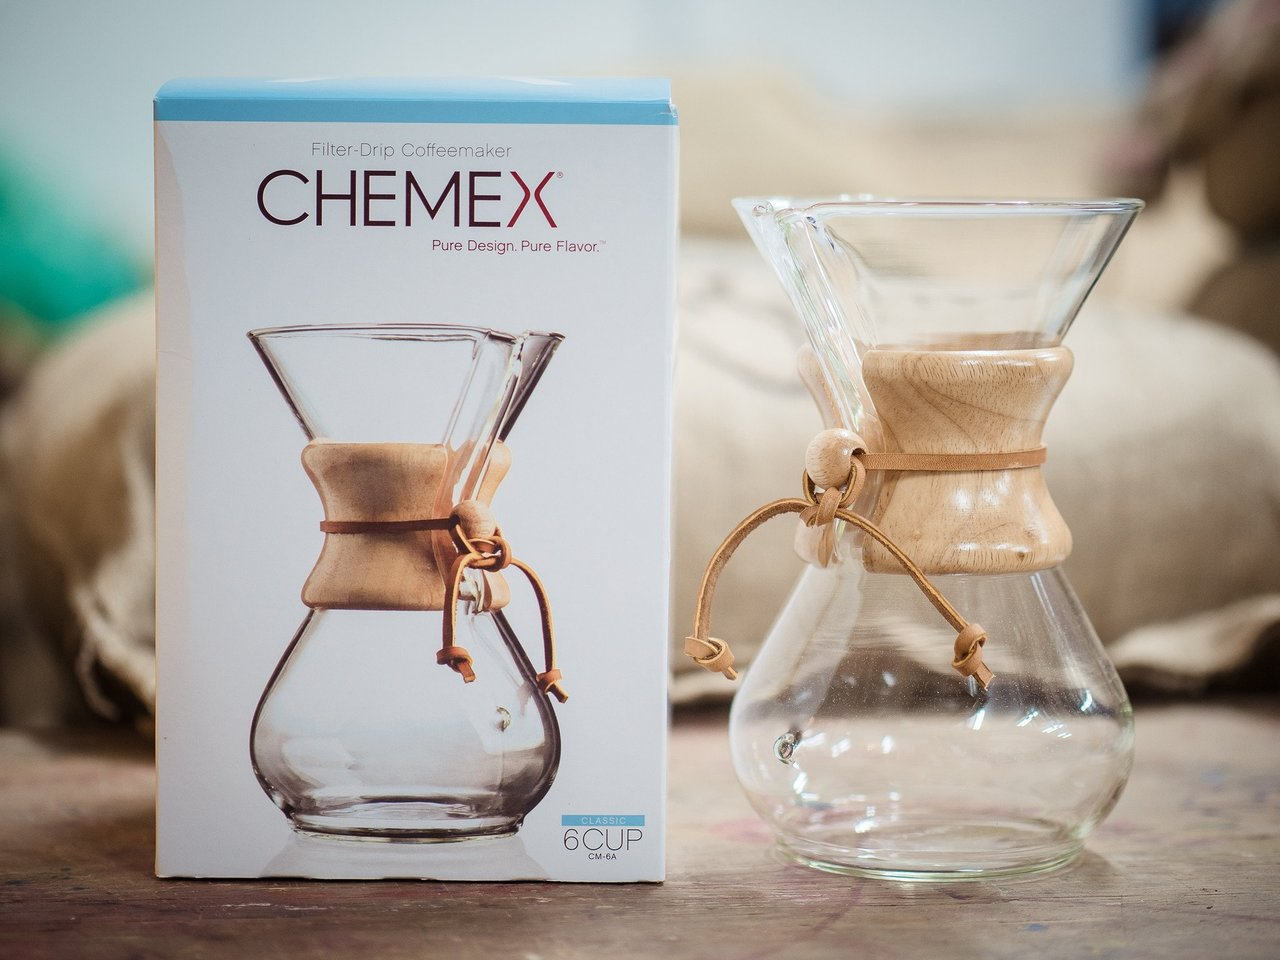 CHEMEX- The perfect pour over method for speciality coffee - Chemex is a great coffee brew method and ideal for making around 4-6 cups of coffee. The think filter papers are very different to the papers used with the Hario V60 and do make a significant difference to the final taste. Best used with a pouring kettle like the Hario 1L model. Filters for the Chemex are sold seperately and are not included in the box.